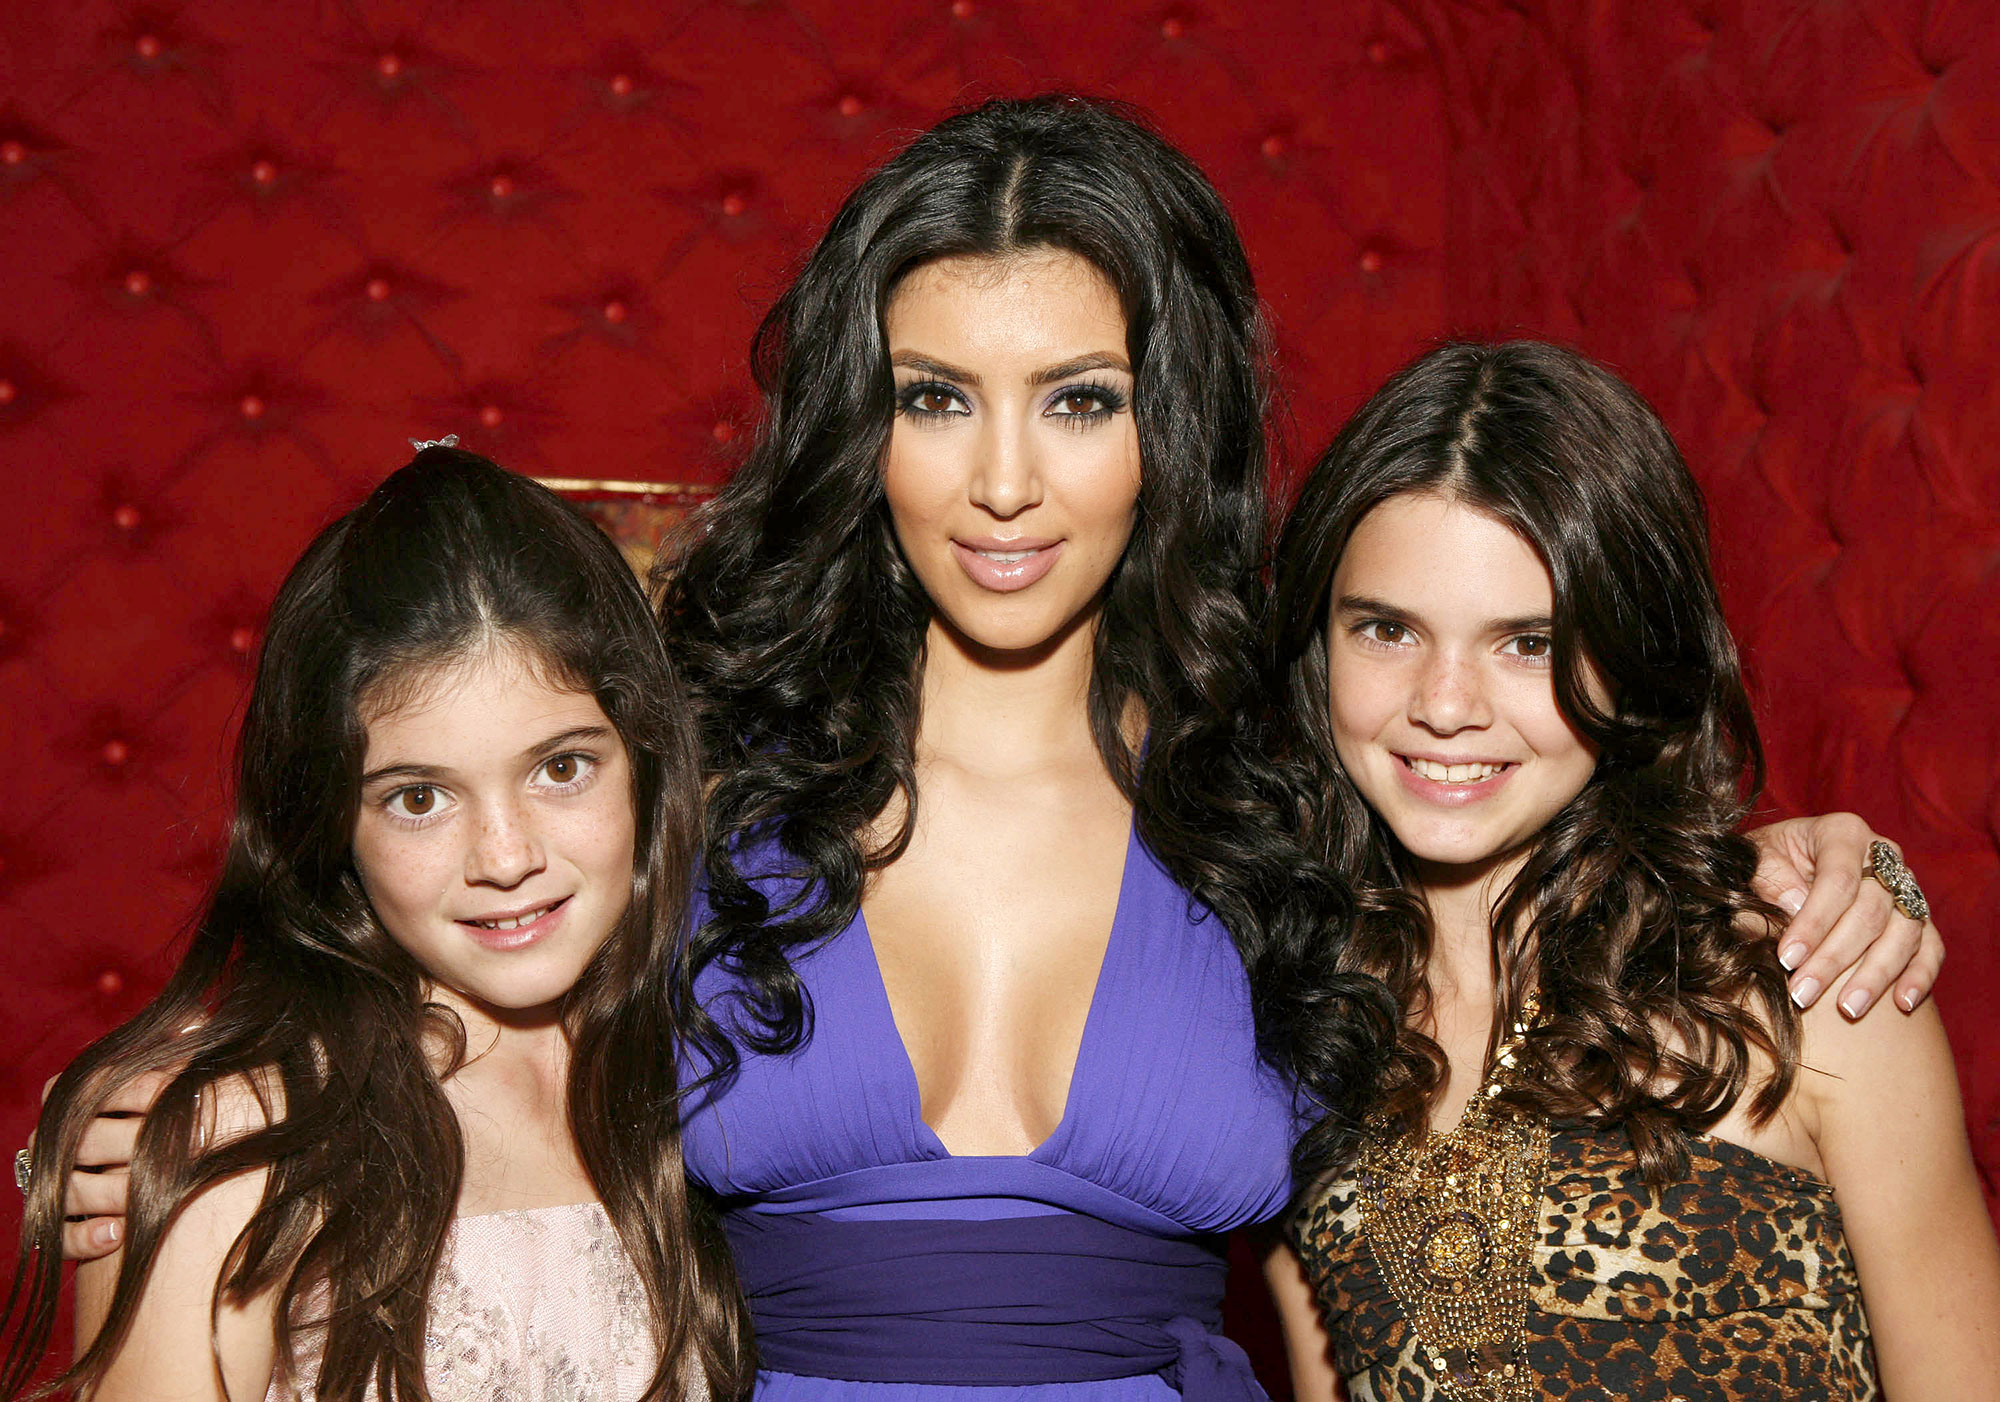 Kendall Jenner through the years - At 11 years old, Kendall likely had no idea how much her life was about to change as she joined Kylie and older sister Kim Kardashian at a 2007 viewing party for Keeping Up With the Kardashians .